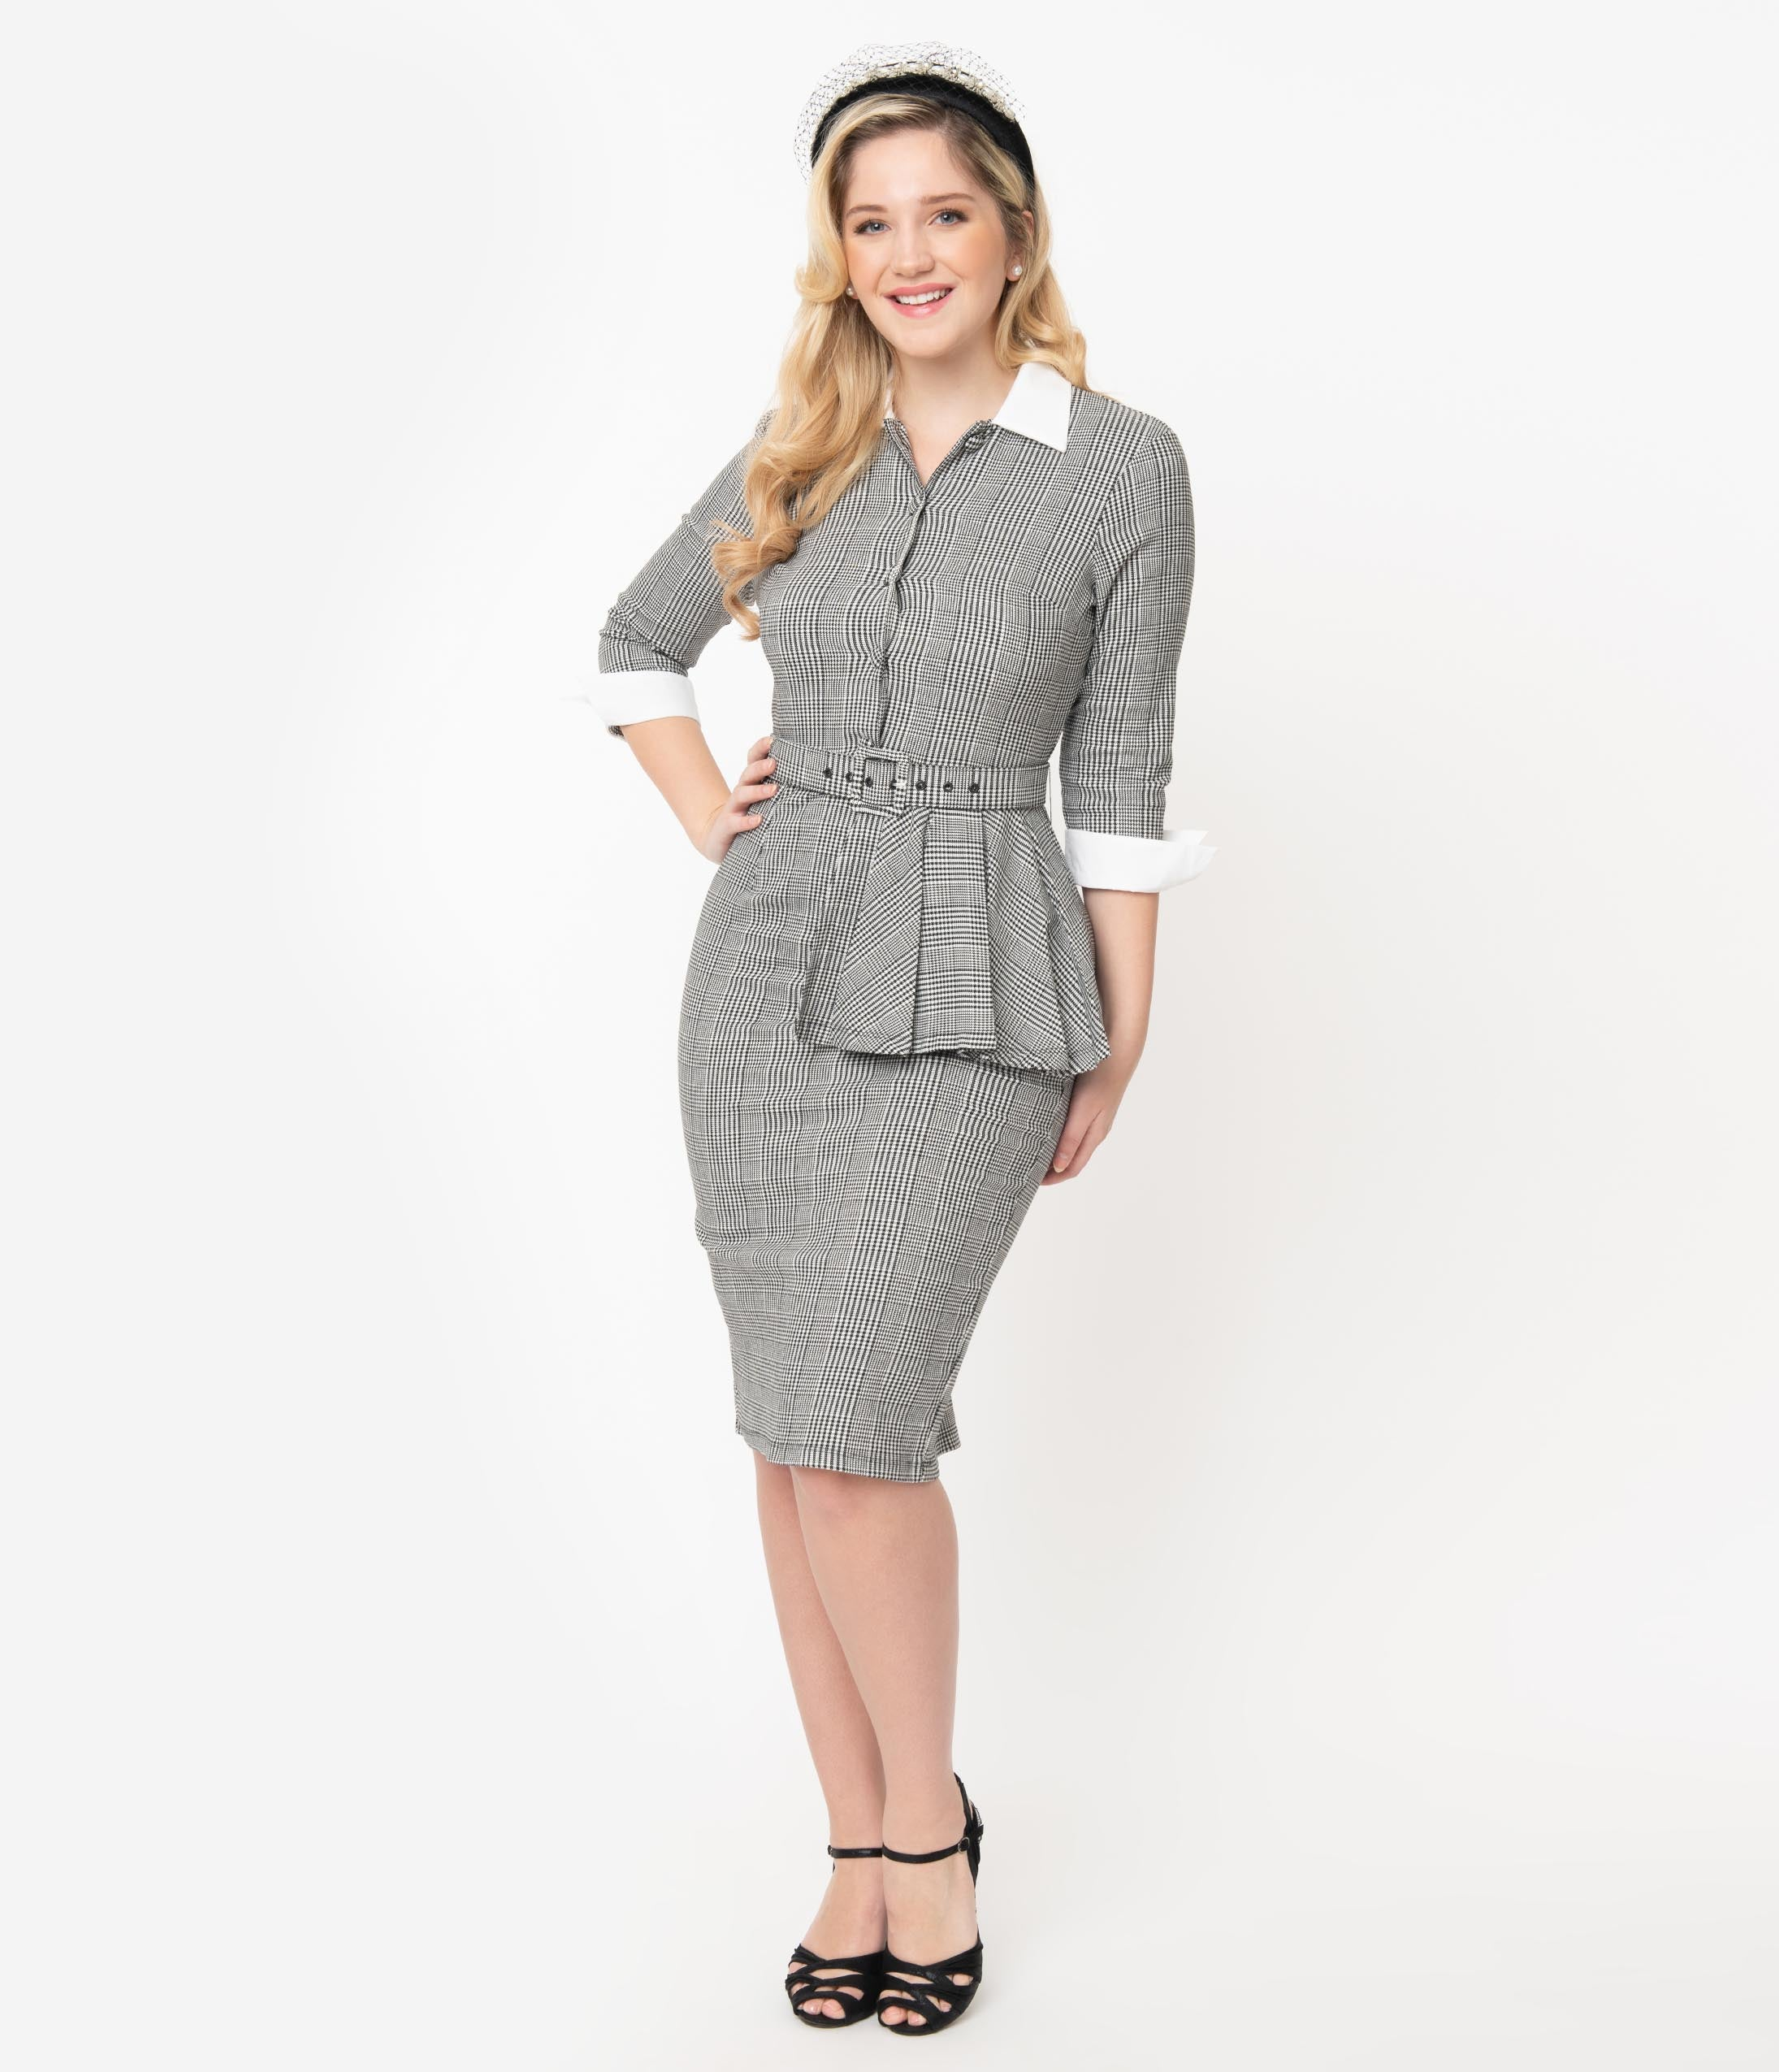 What Did Women Wear in the 1950s? 1950s Fashion Guide I Love Lucy X Unique Vintage Houndstooth Tv Star Pencil Dress $98.00 AT vintagedancer.com